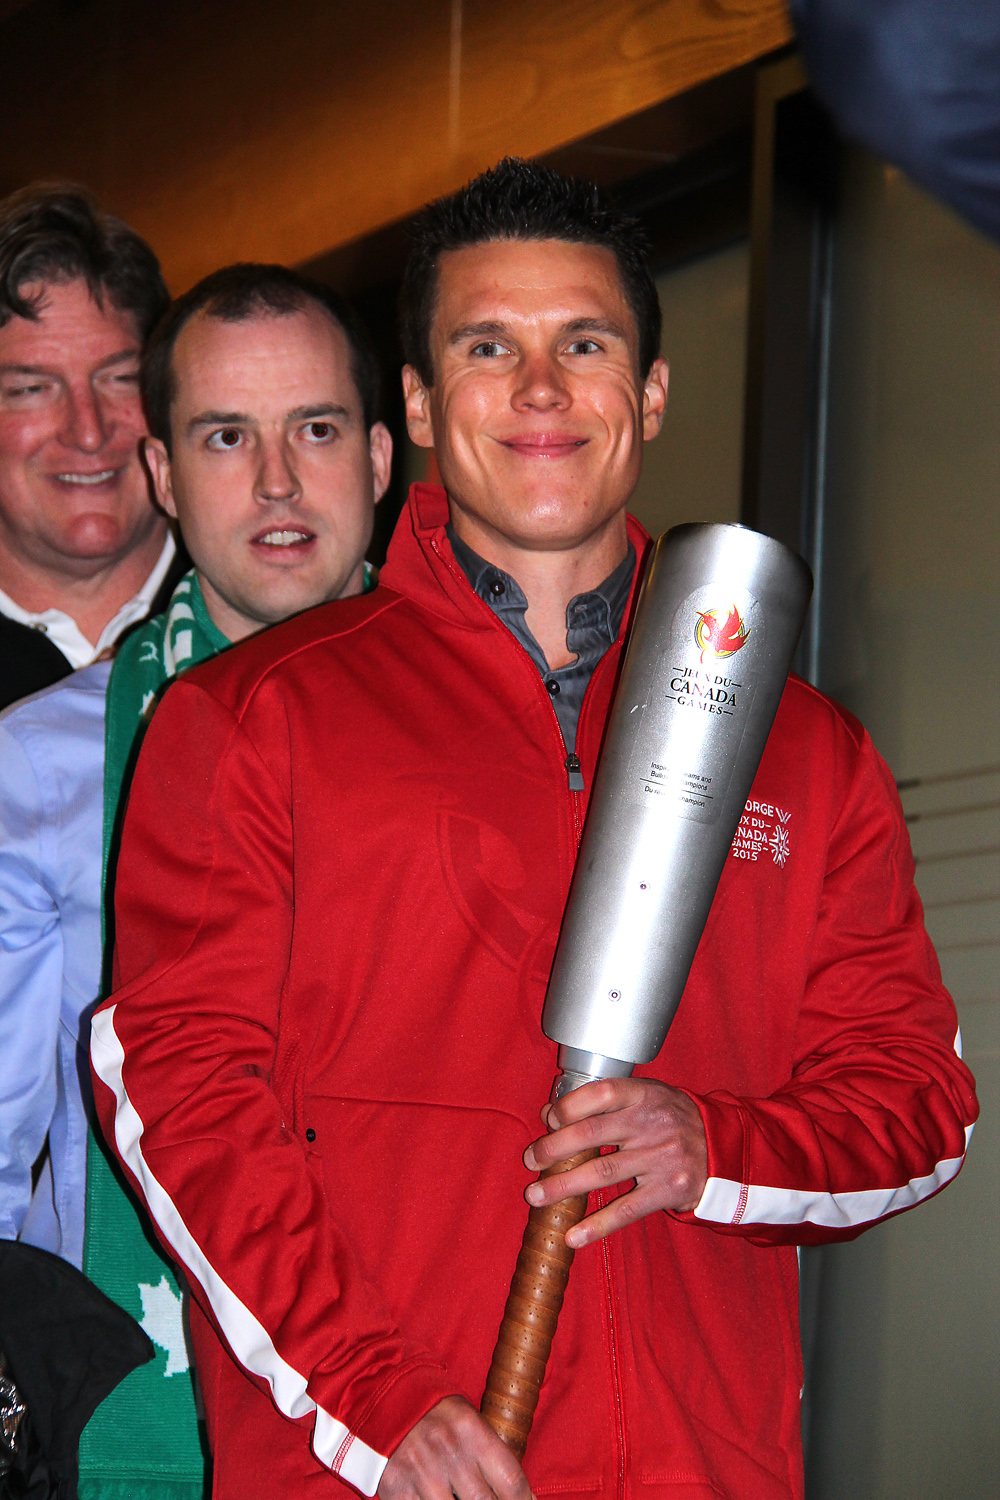 2015 Canada Winter Games torchbearer Scott McWalter, right, with Jonathan Dyck, chair of the committee that chose the torchbearers for  the Games, and Games CEO Stuart Ballantyne at a ceremony Friday announcing the names of the 150 people who will carry the torch in northern B.C. prior to the Games opening in February in Prince George. Bill PHILLIPS/Free Press